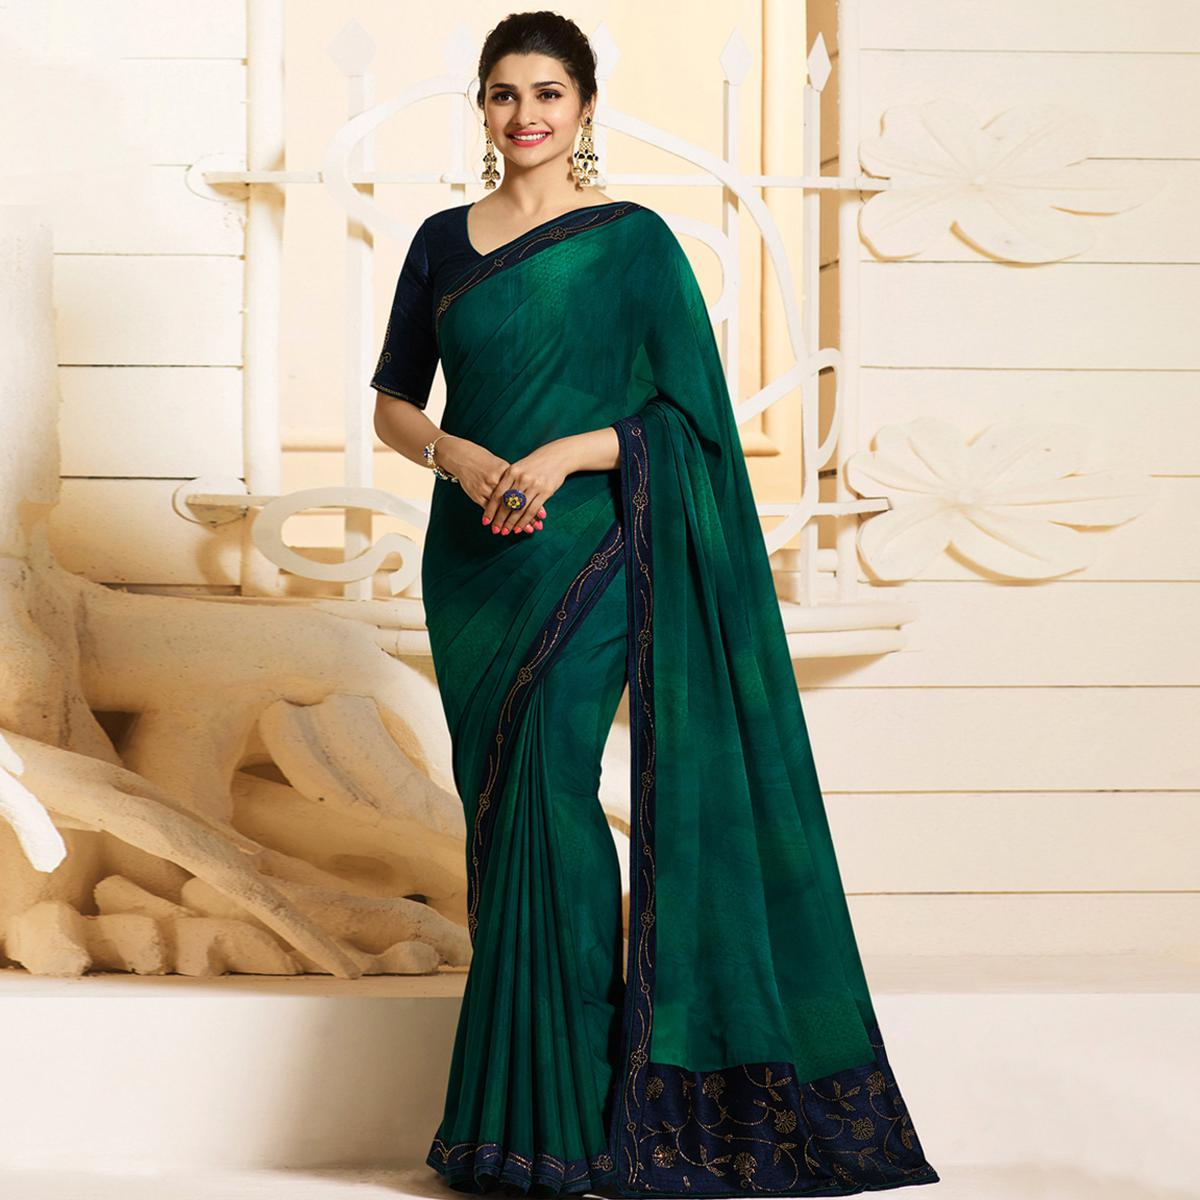 Marvellous Peacock Green Colored Partywear Embroidered Georgette Saree